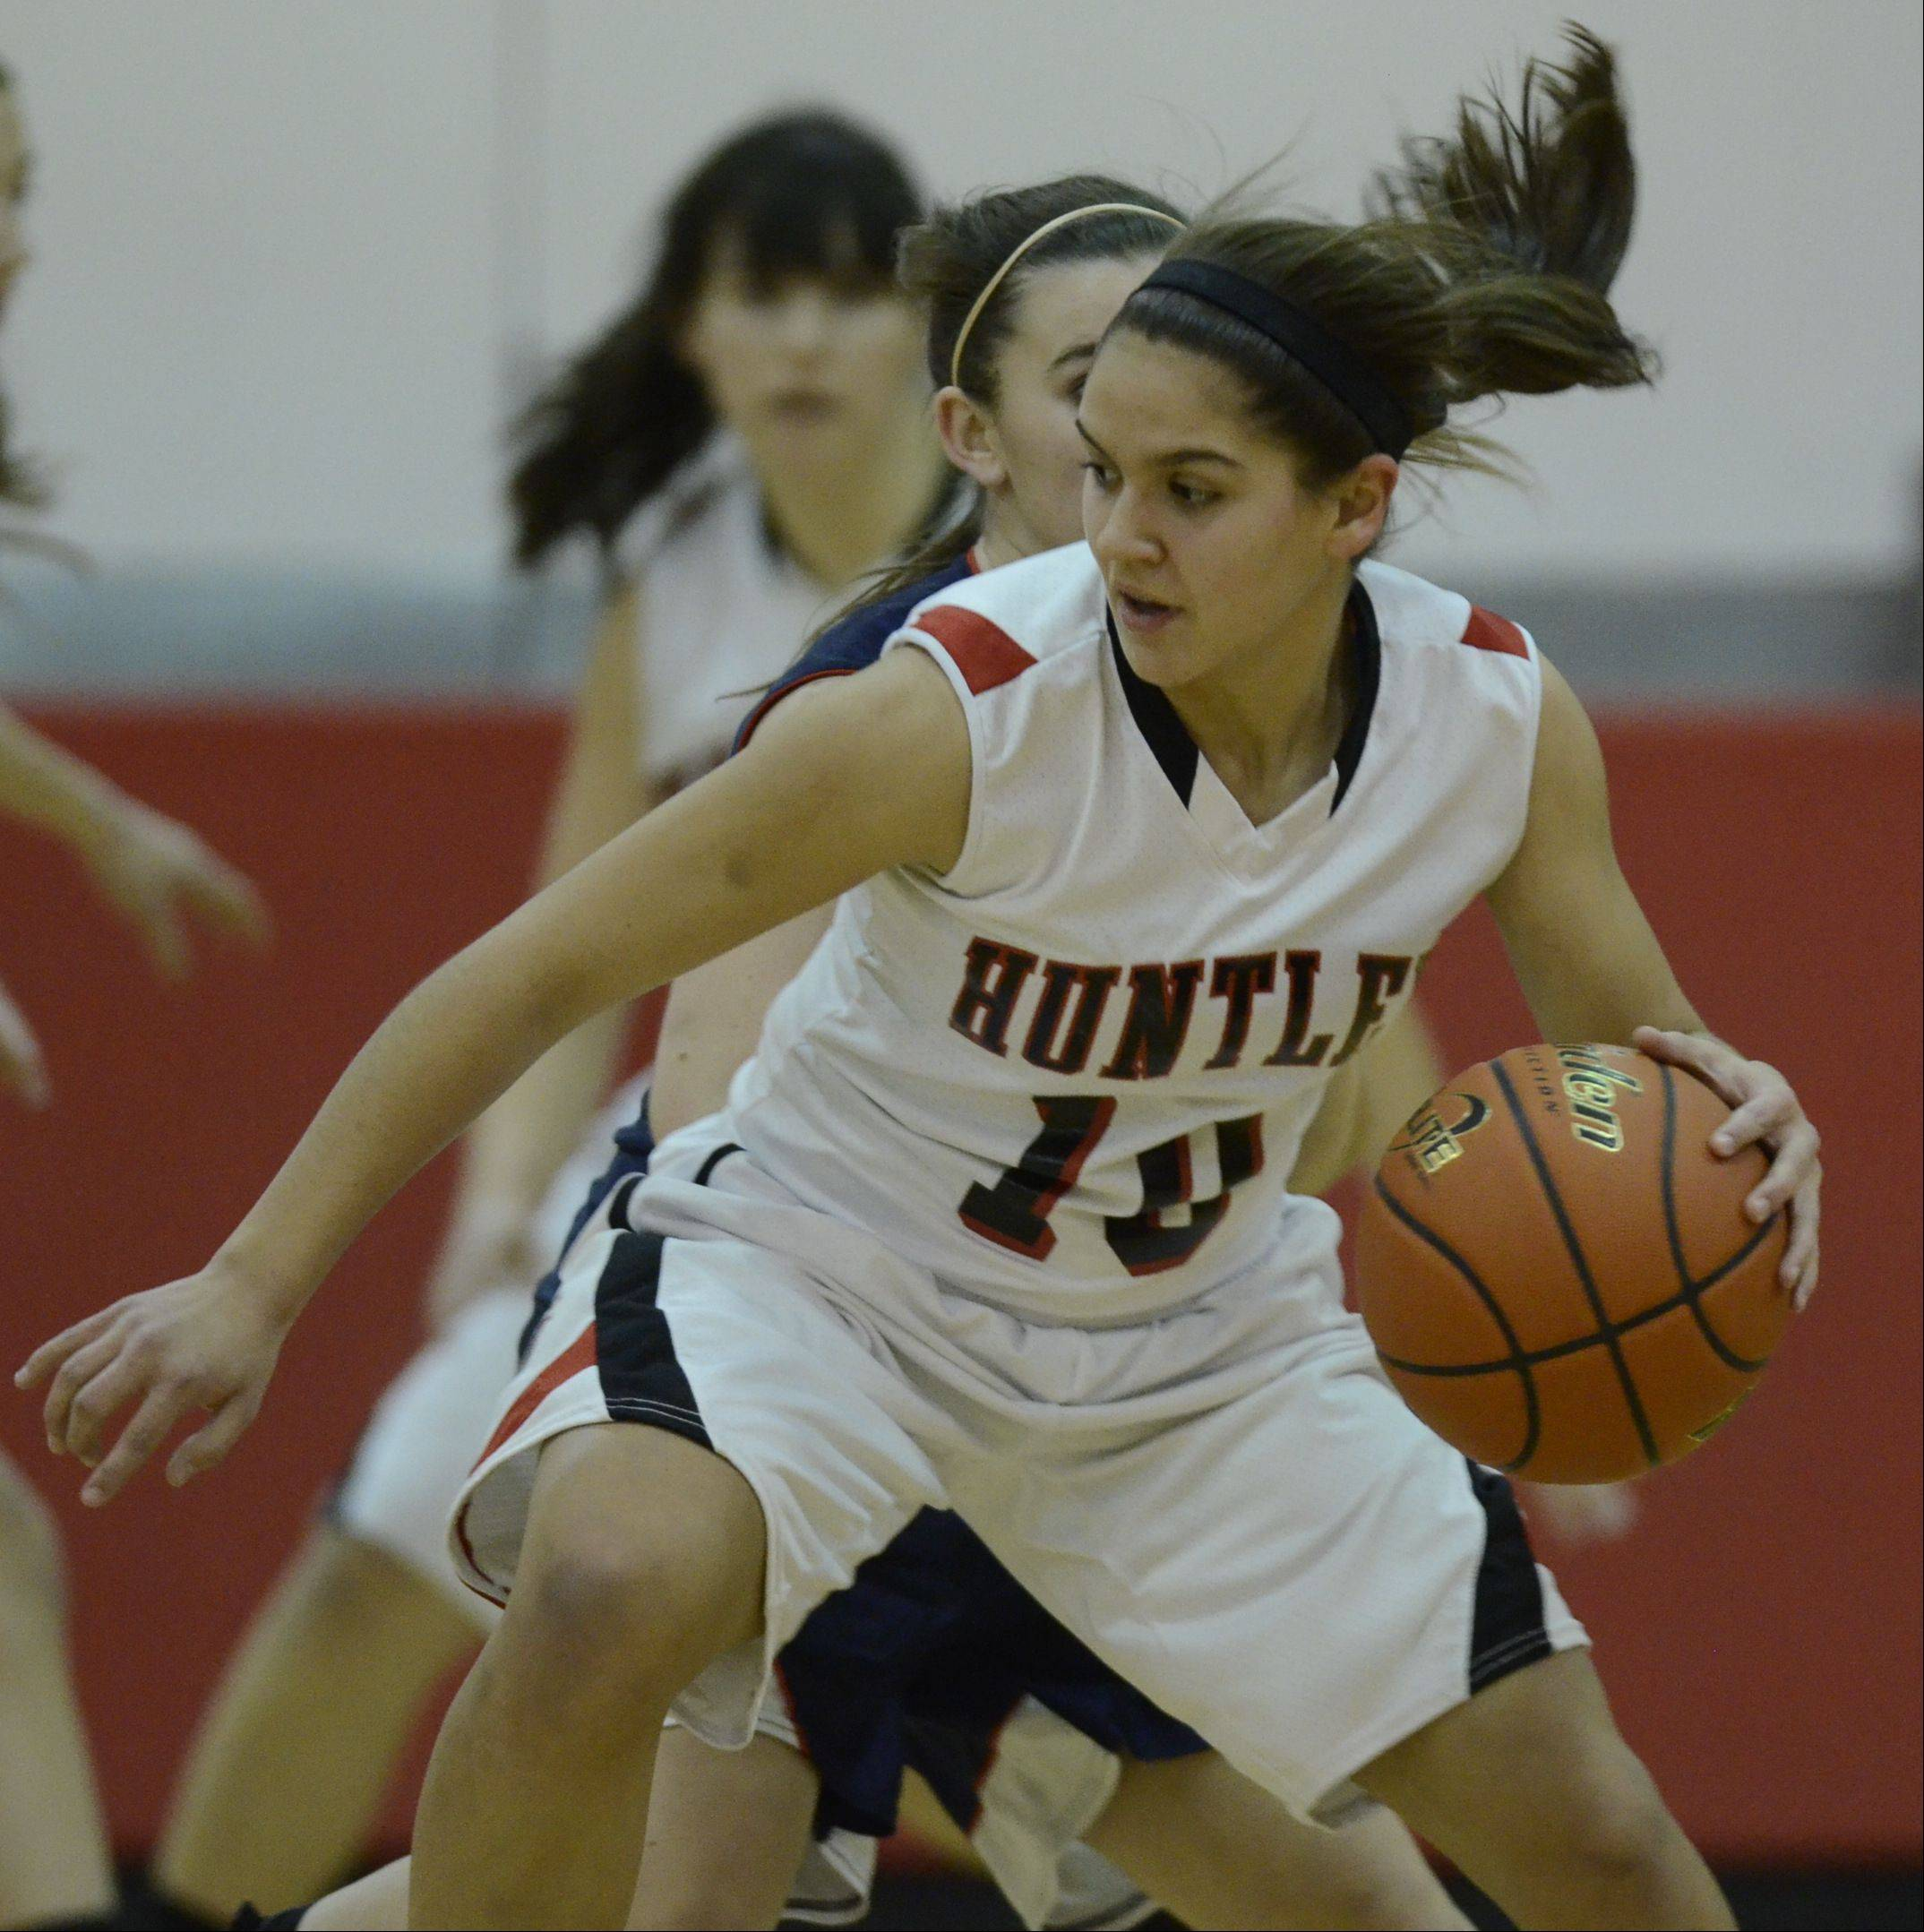 Images from the Mundelein girls basketball tournament championship game between Huntley and Conant on Saturday, Dec. 29 at Mundelein High School.